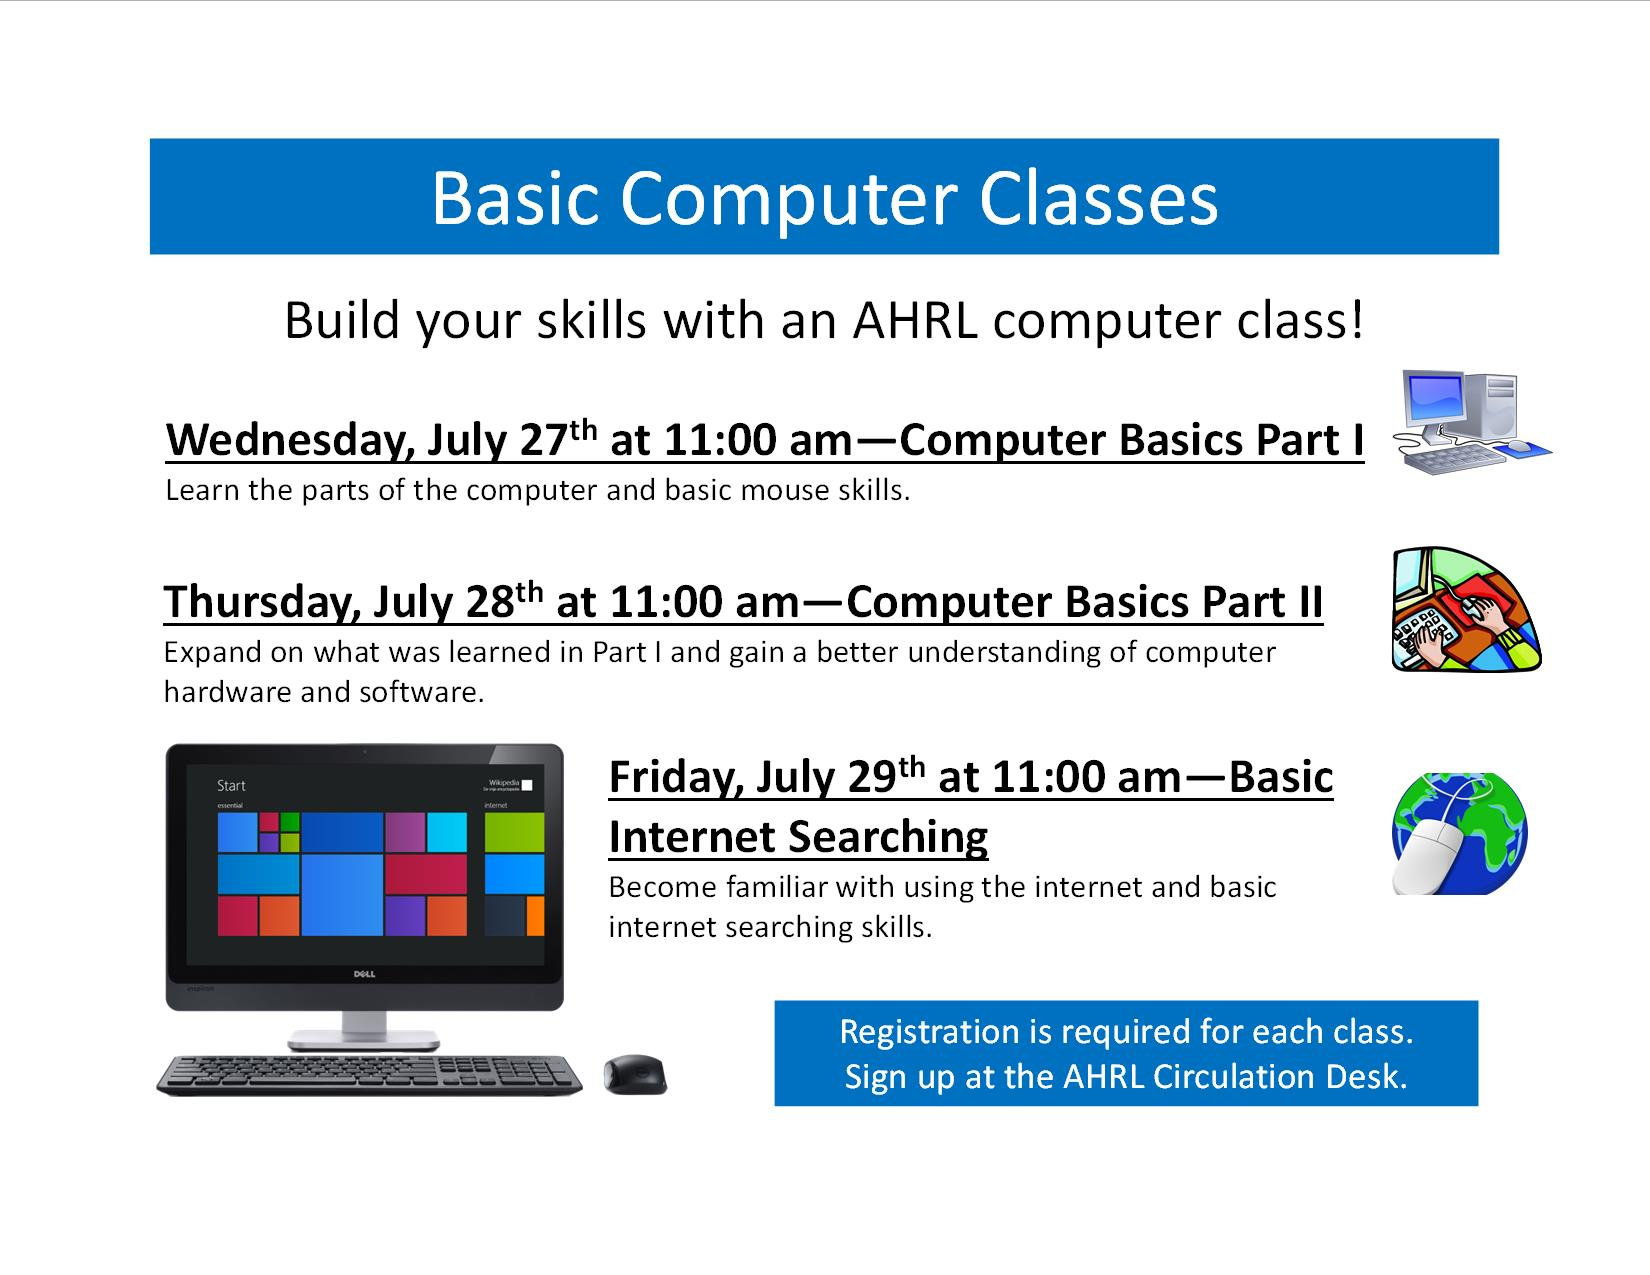 Basic computer classes being offered at AHRL! - Alleghany ...